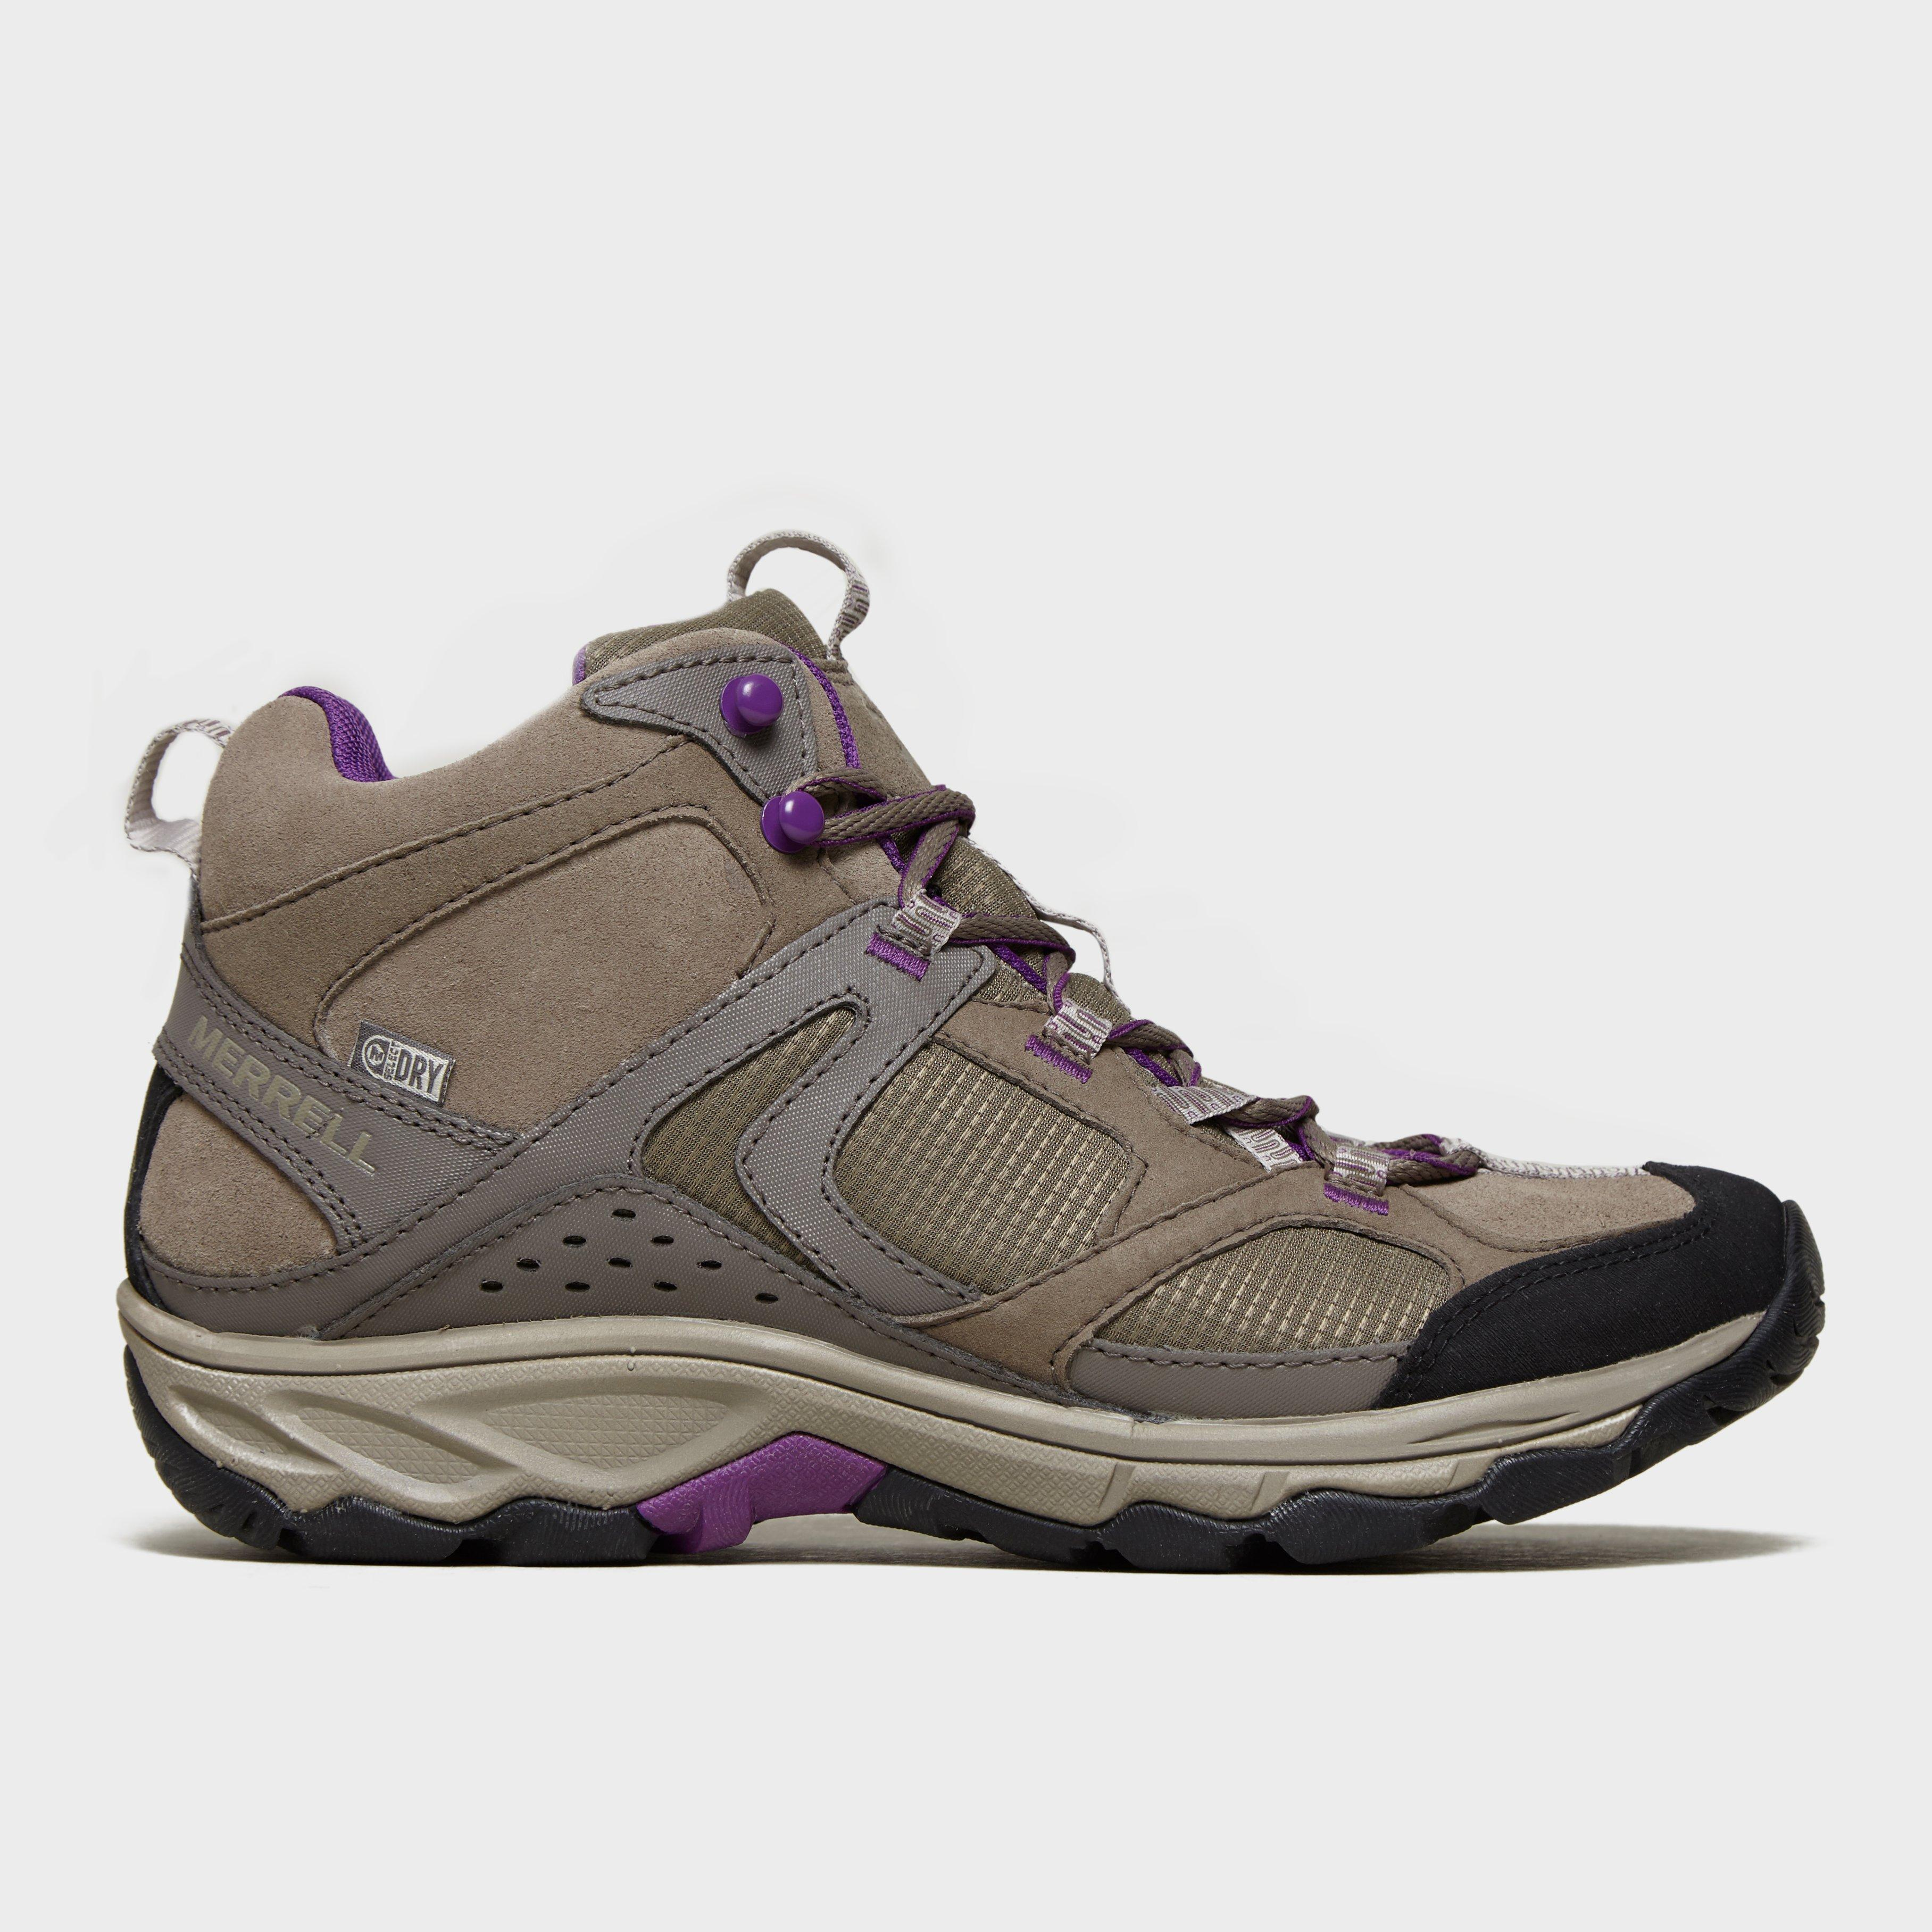 Merrell Women s Daria Mid Waterproof Hiking Boot